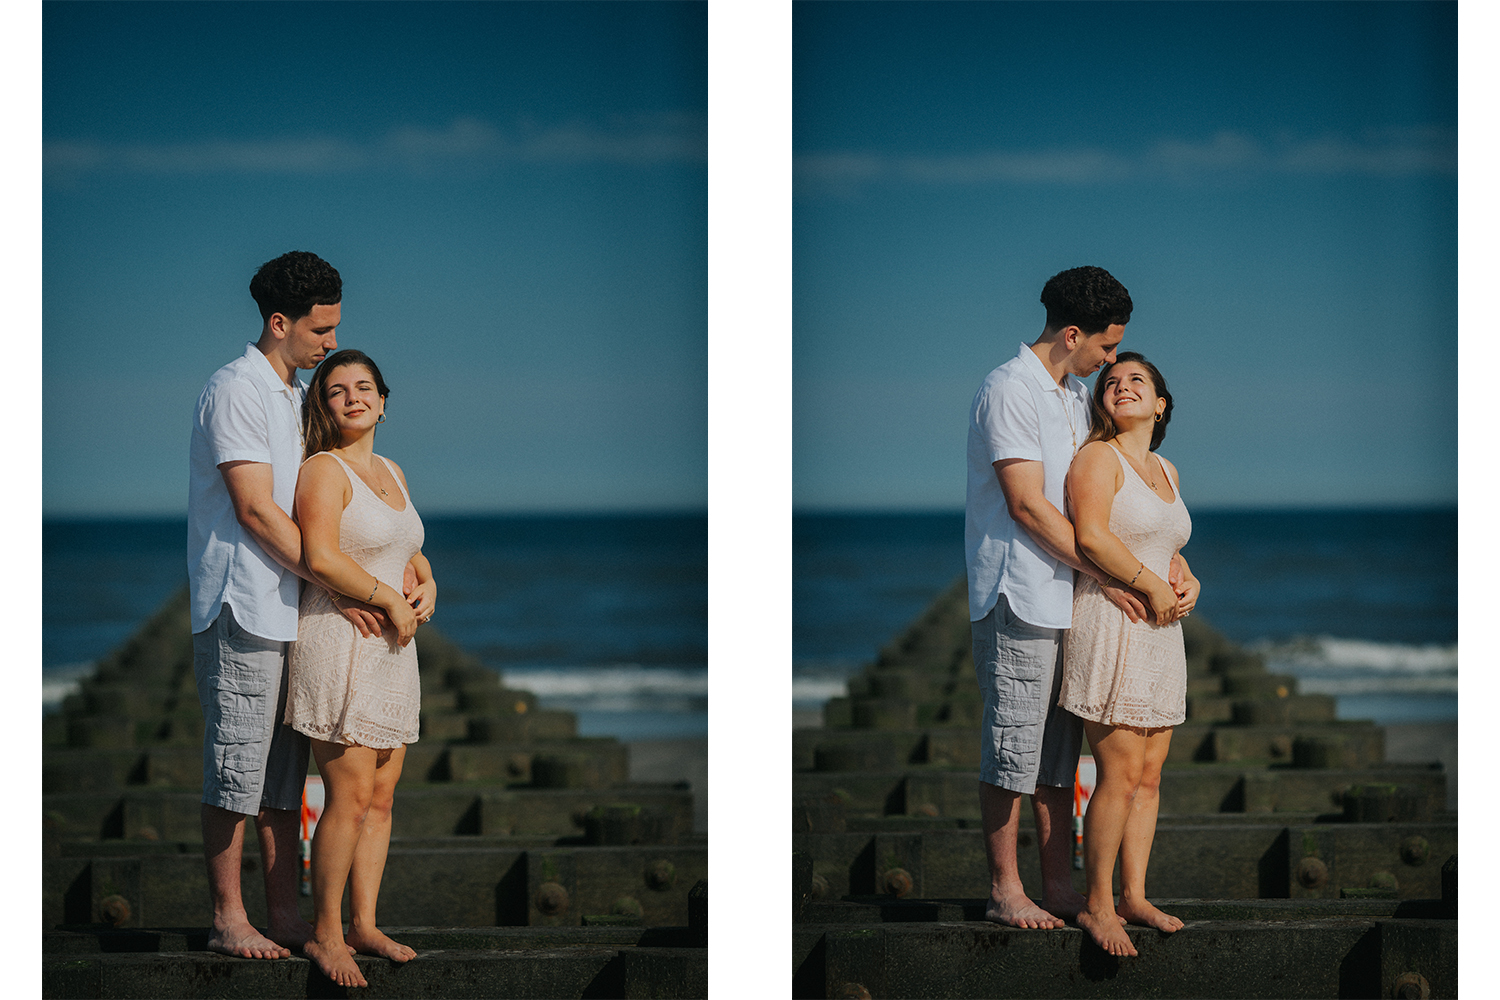 New_Jersey_Wedding_Photography_Engagement_Session_Beach_Session_Couple_005.jpg